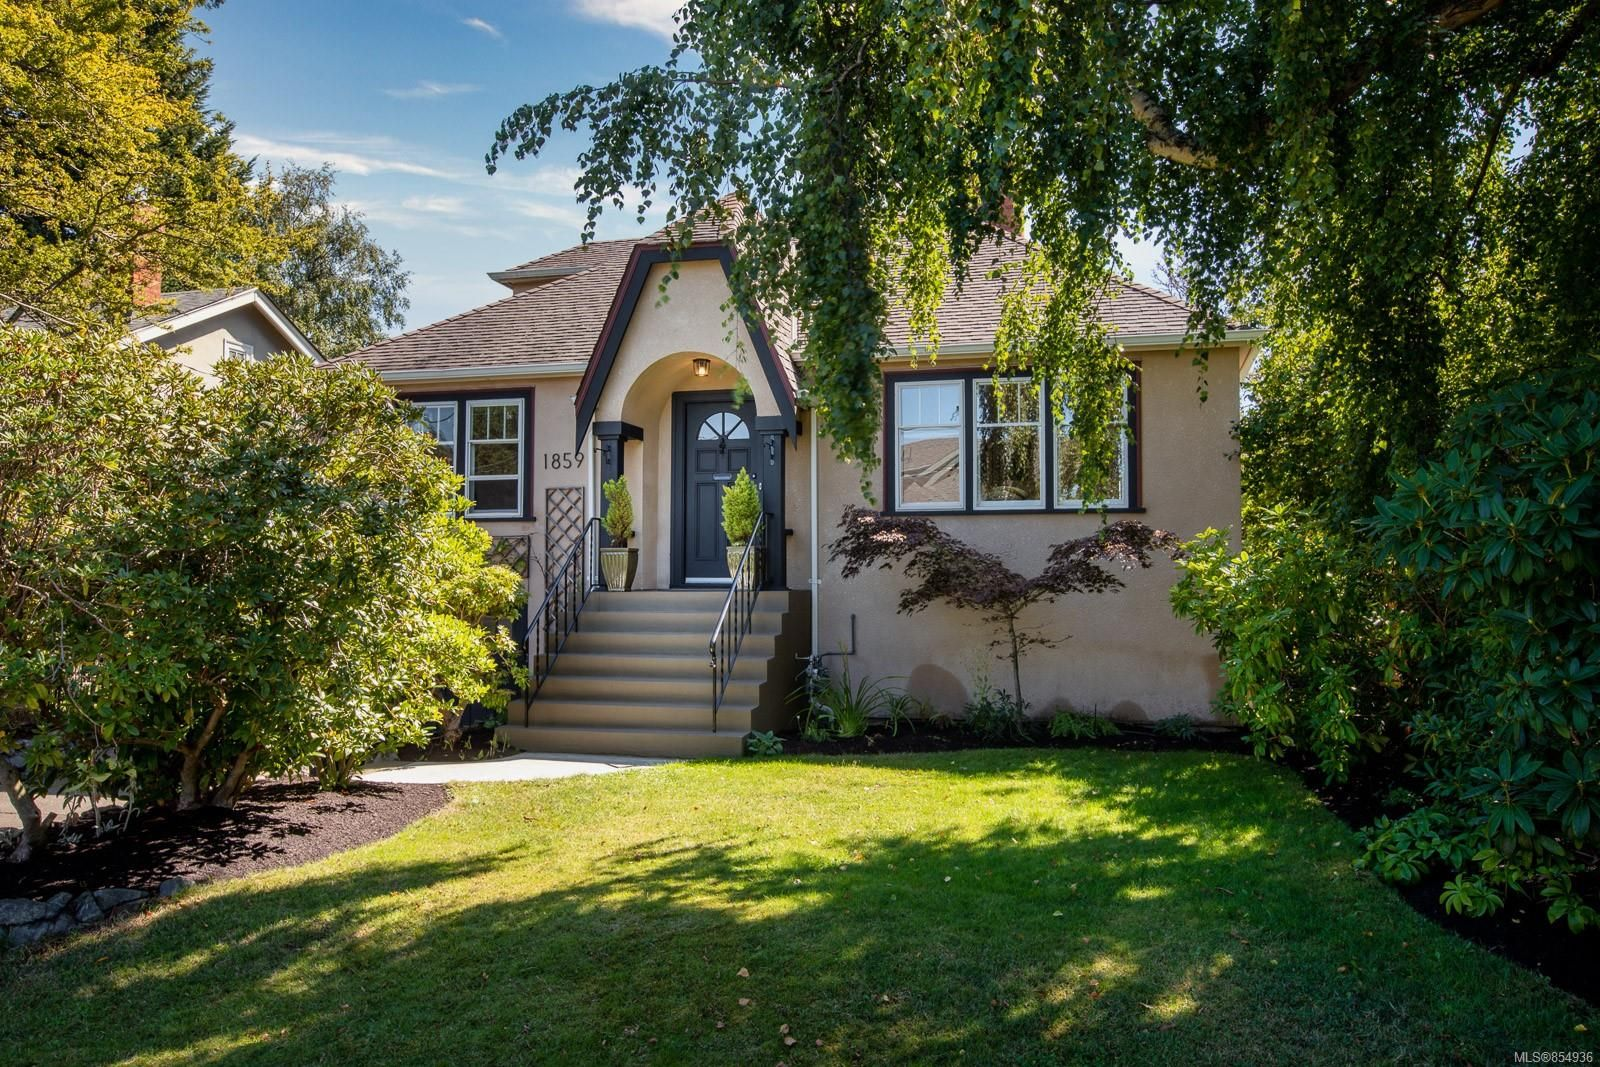 Main Photo: 1859 Monteith St in : OB North Oak Bay House for sale (Oak Bay)  : MLS®# 854936